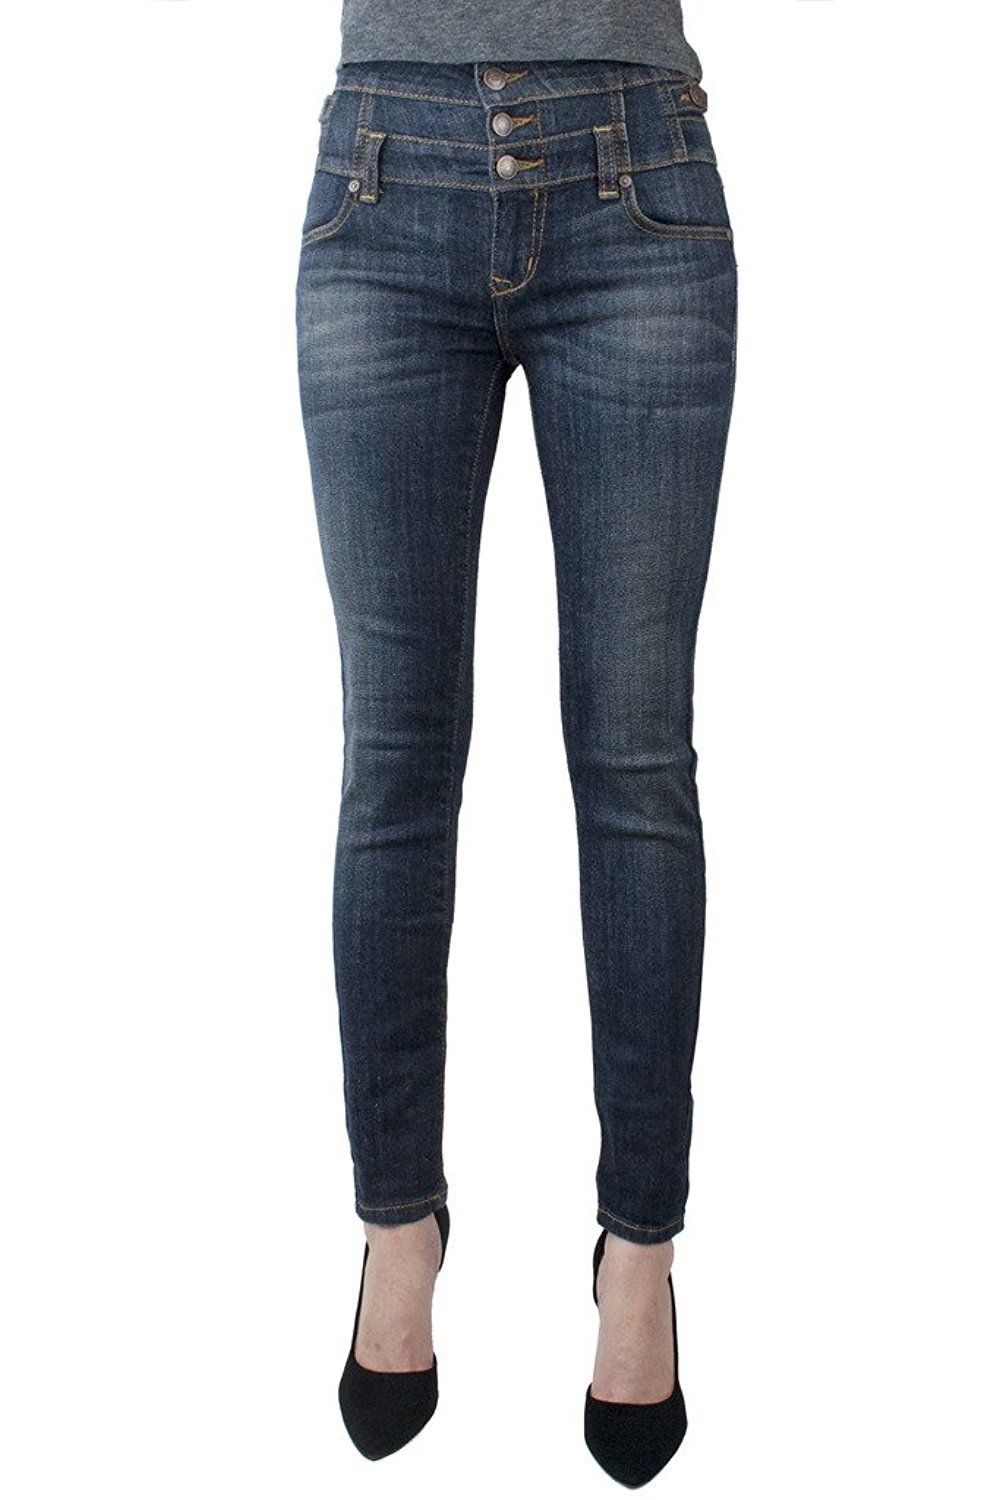 5f25e5432 Eunina Women's Plus Size High Waisted Stretch Skinny Jeans Dark Blue --  Don't get left behind, see this great product : Plus size jeans